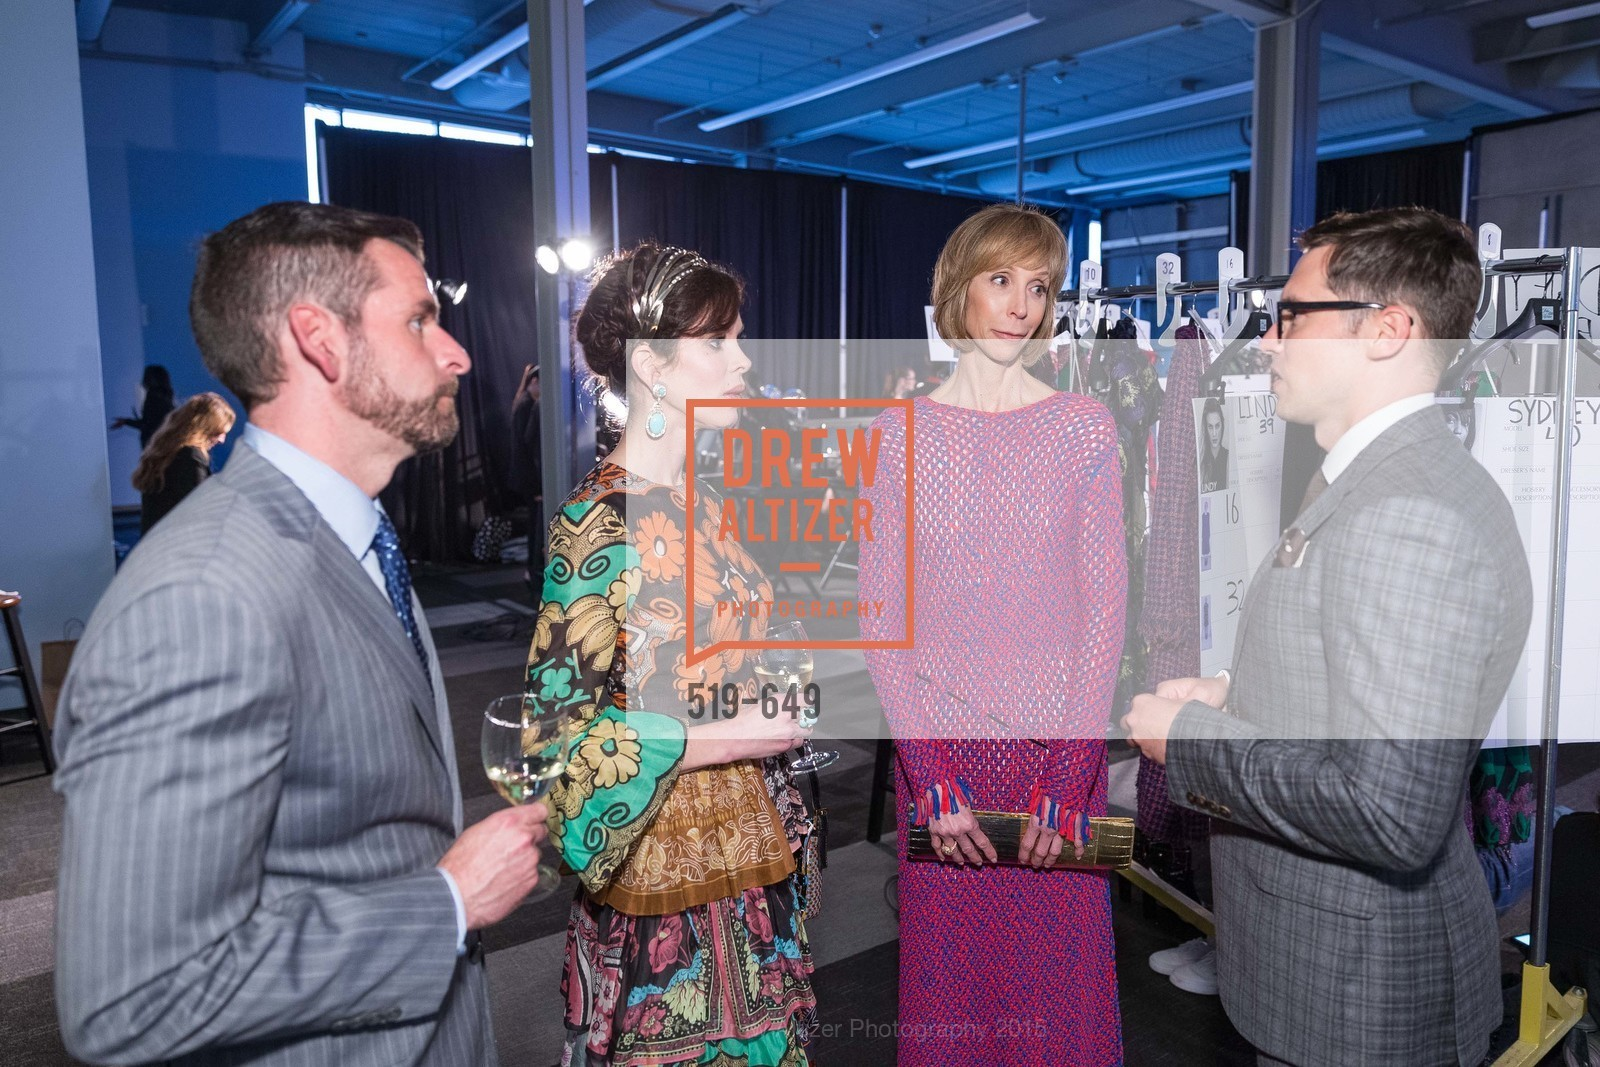 Ryan Williams, Stephanie Marver, Nancy Kukacka, Erdem Moralioglu, Fashion Forward: An Evening with Erdem presented by SF Opera Guild and Saks Fifth Avenue, Pier 27. Pier 27, The Embarcadero, March 25th, 2015,Drew Altizer, Drew Altizer Photography, full-service agency, private events, San Francisco photographer, photographer california